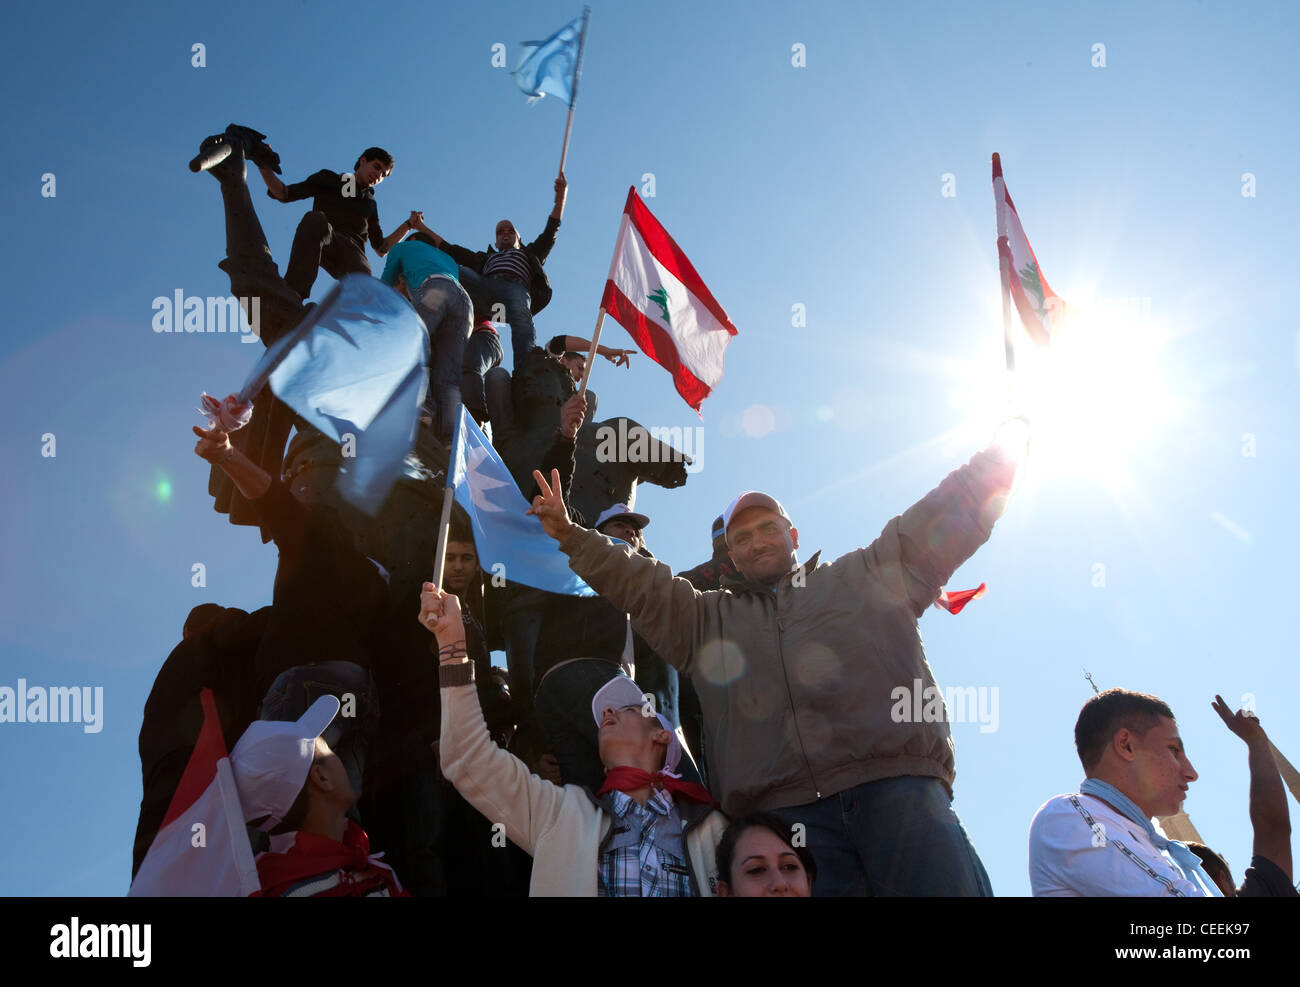 Political supporters with flags clamber over Martyrs Square monument in Beirut, Lebanon during Arab Spring of 2011. Stock Photo